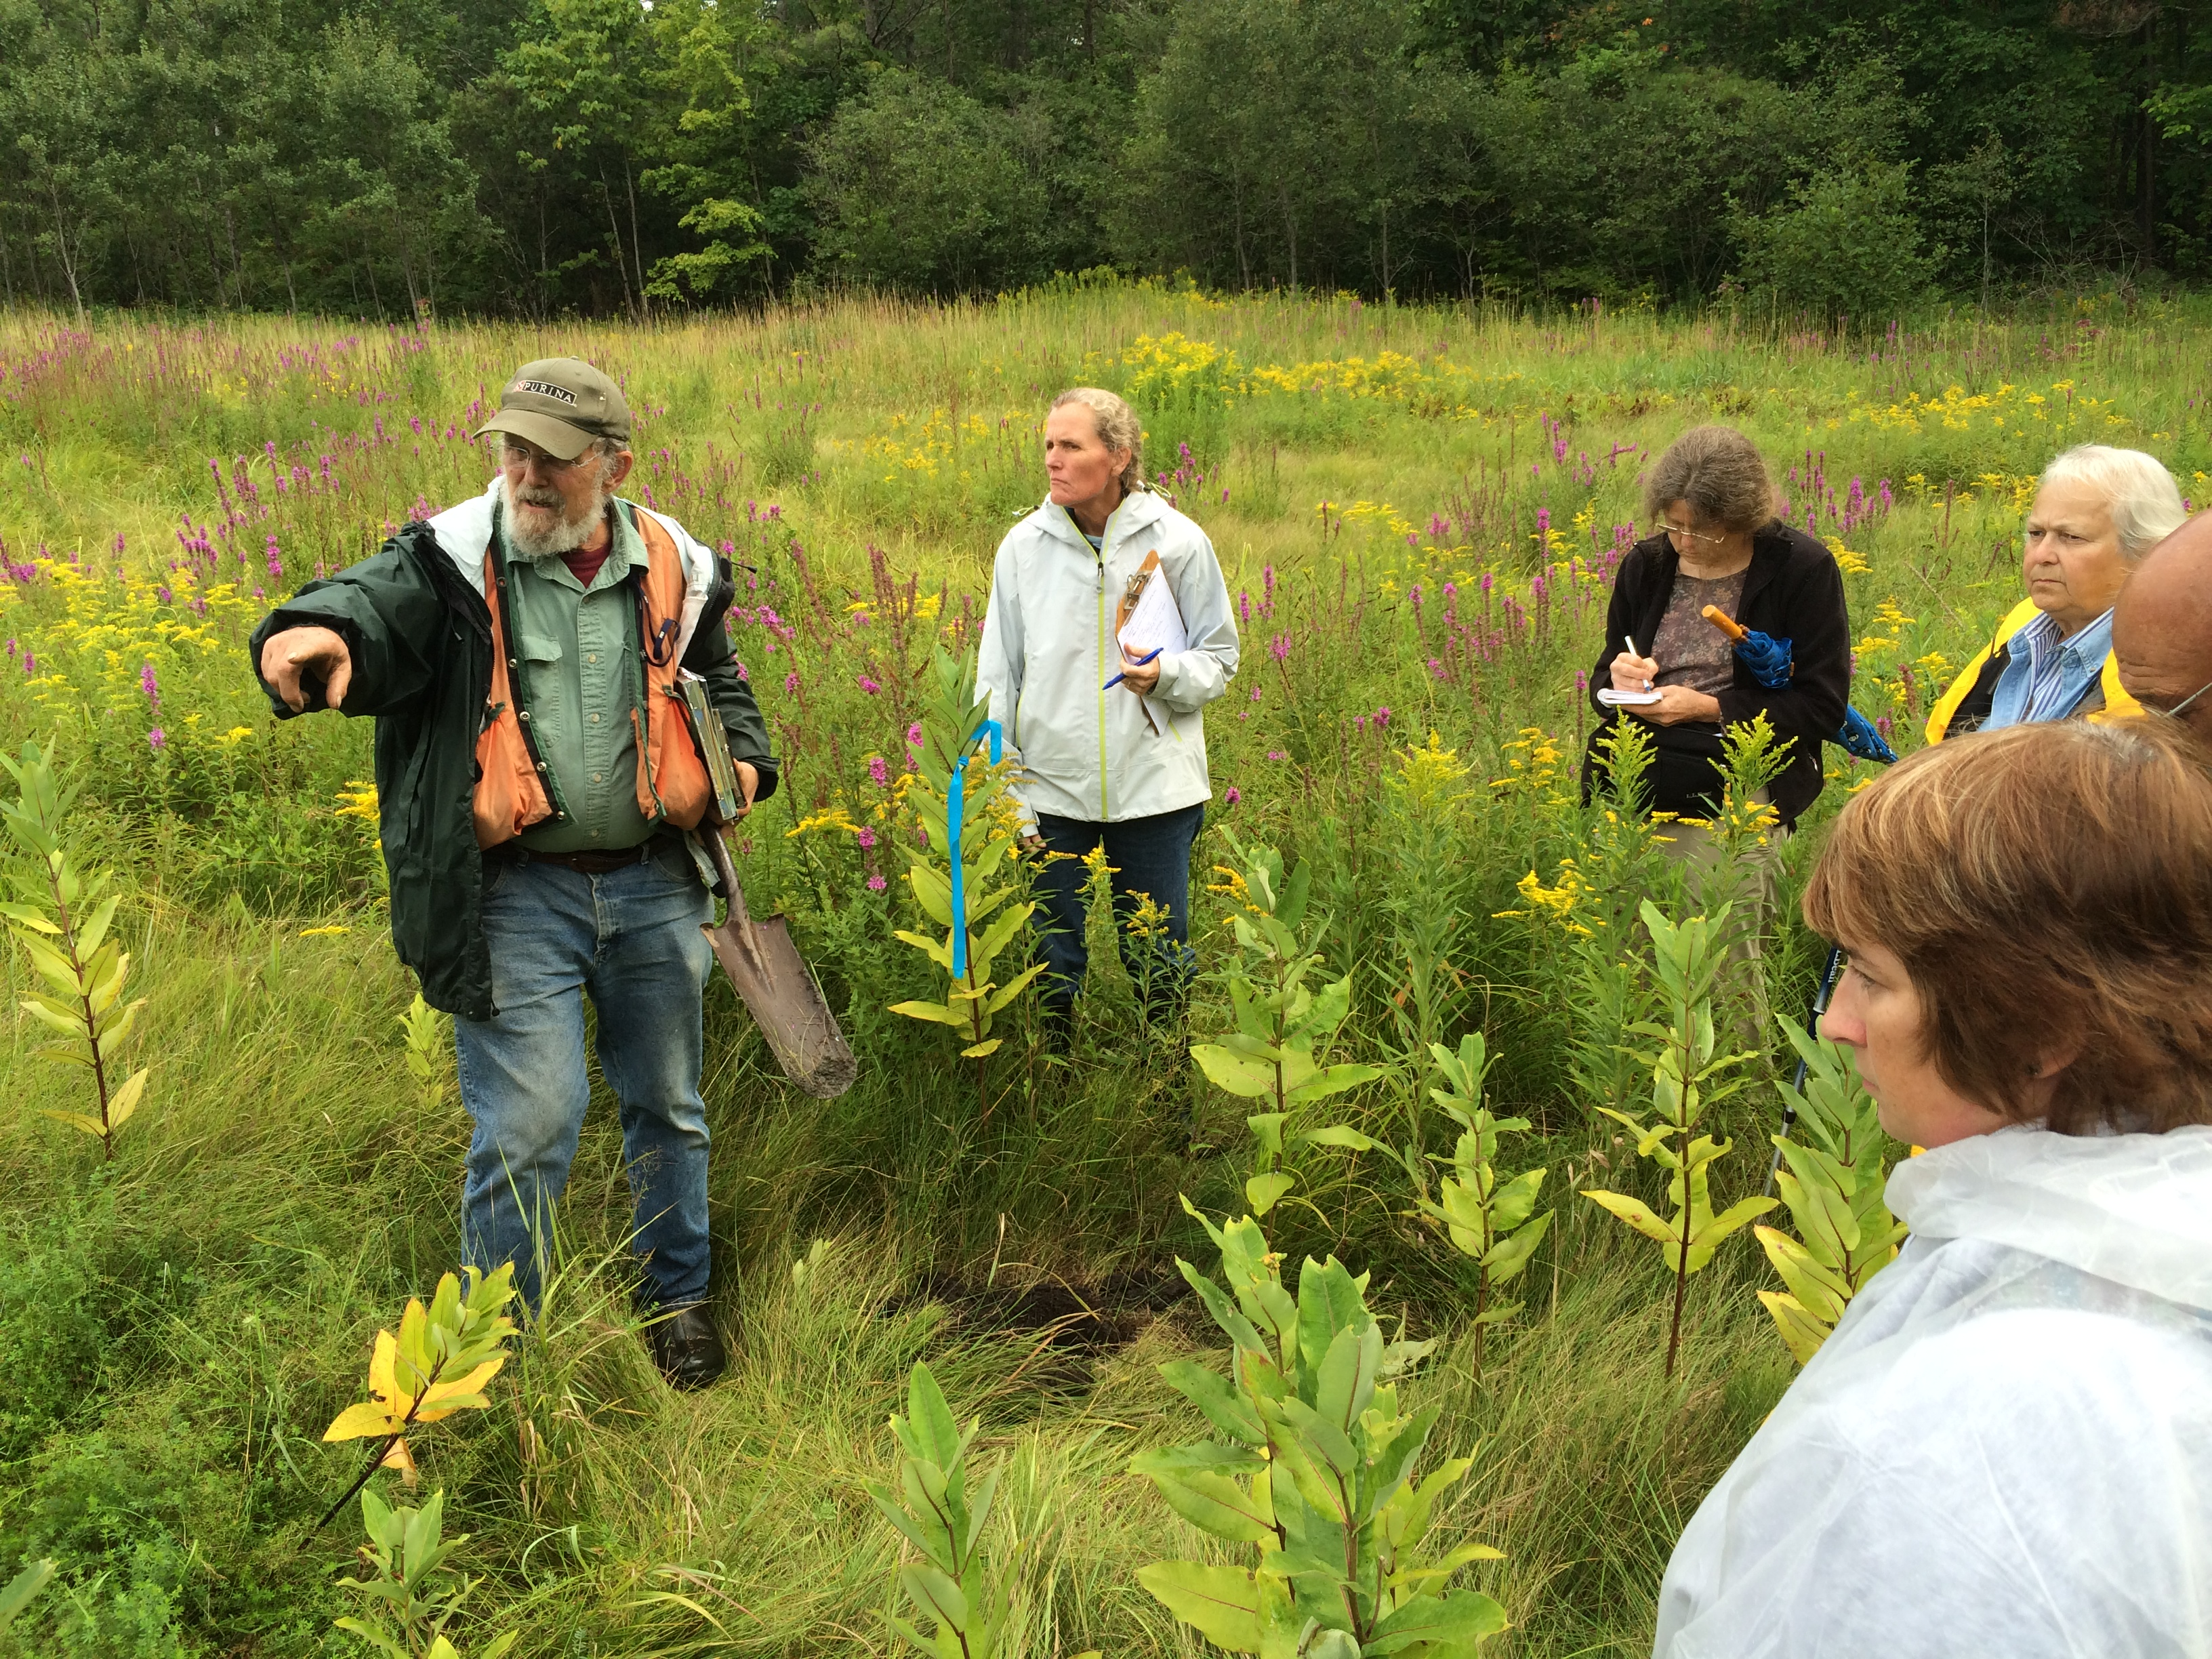 Jim Kennedy, wetland scientist, at a 2014 Field Training Series on Wetland Identification